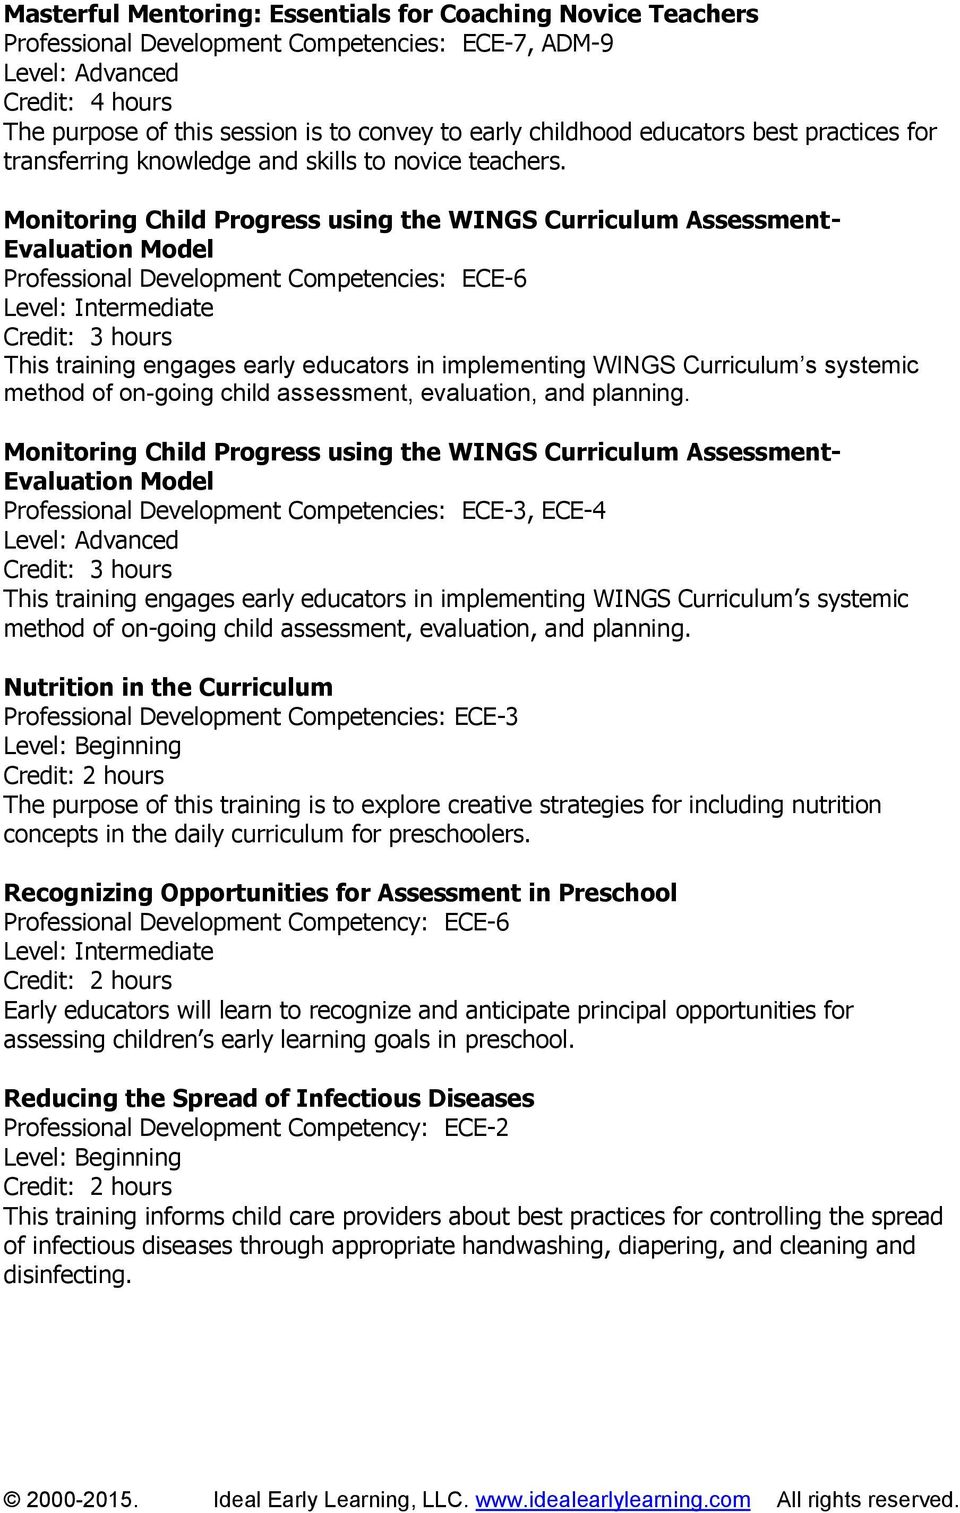 Monitoring Child Progress using the WINGS Curriculum Assessment- Evaluation Model Professional Development Competencies: ECE-6 This training engages early educators in implementing WINGS Curriculum s